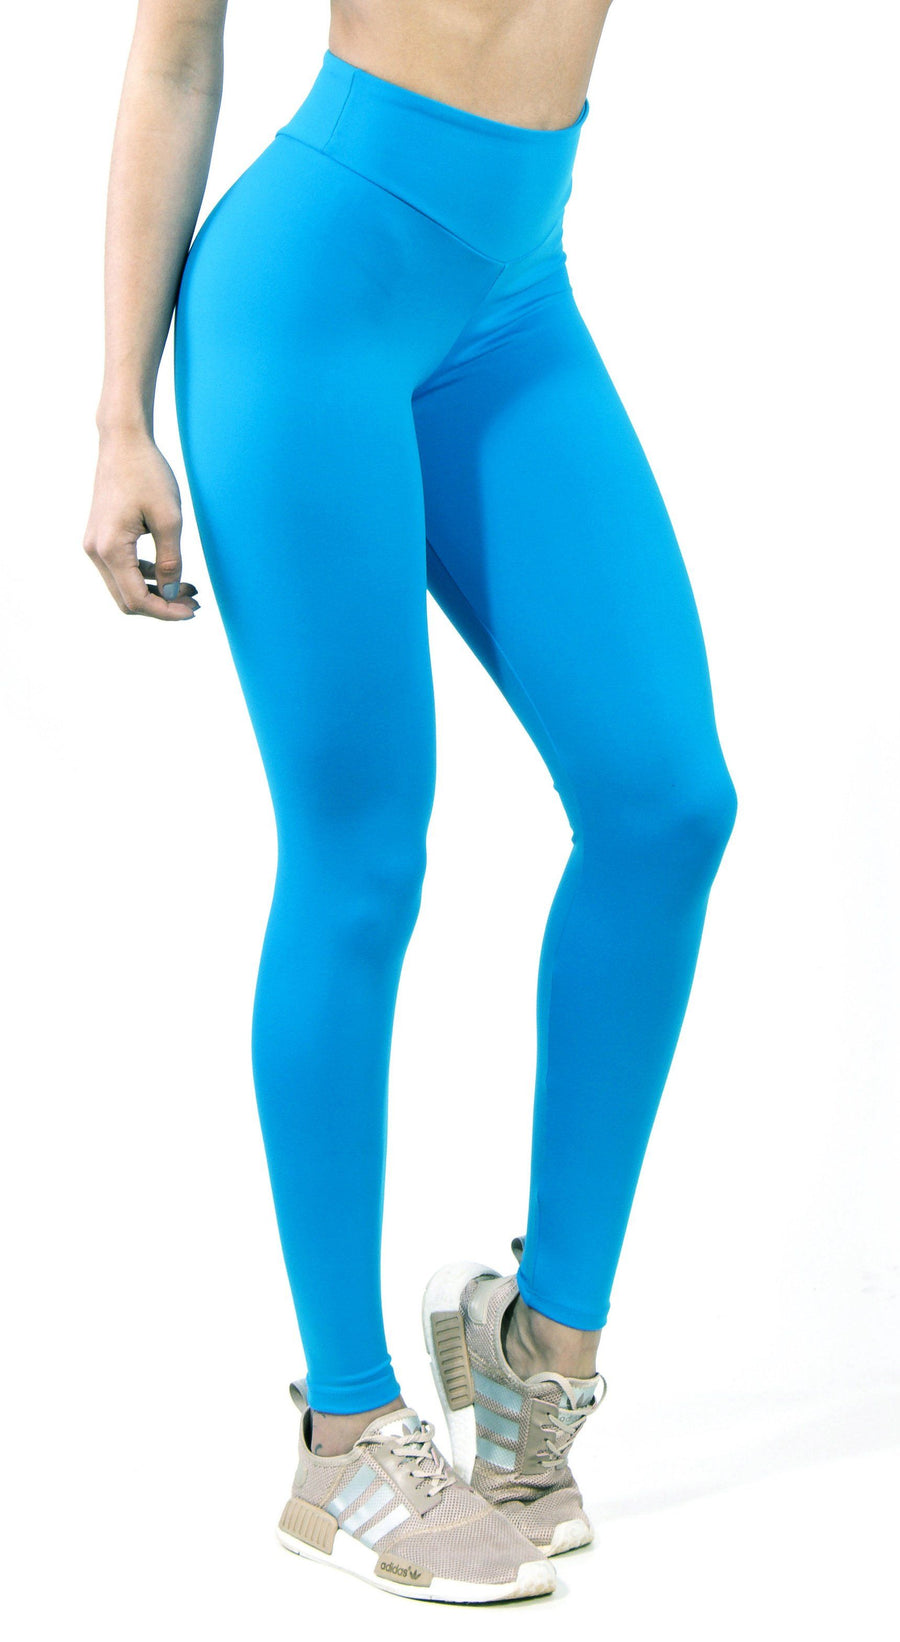 Brazilian Workout Legging -  High Waist Scrunch Booty Lift! Sky Blue